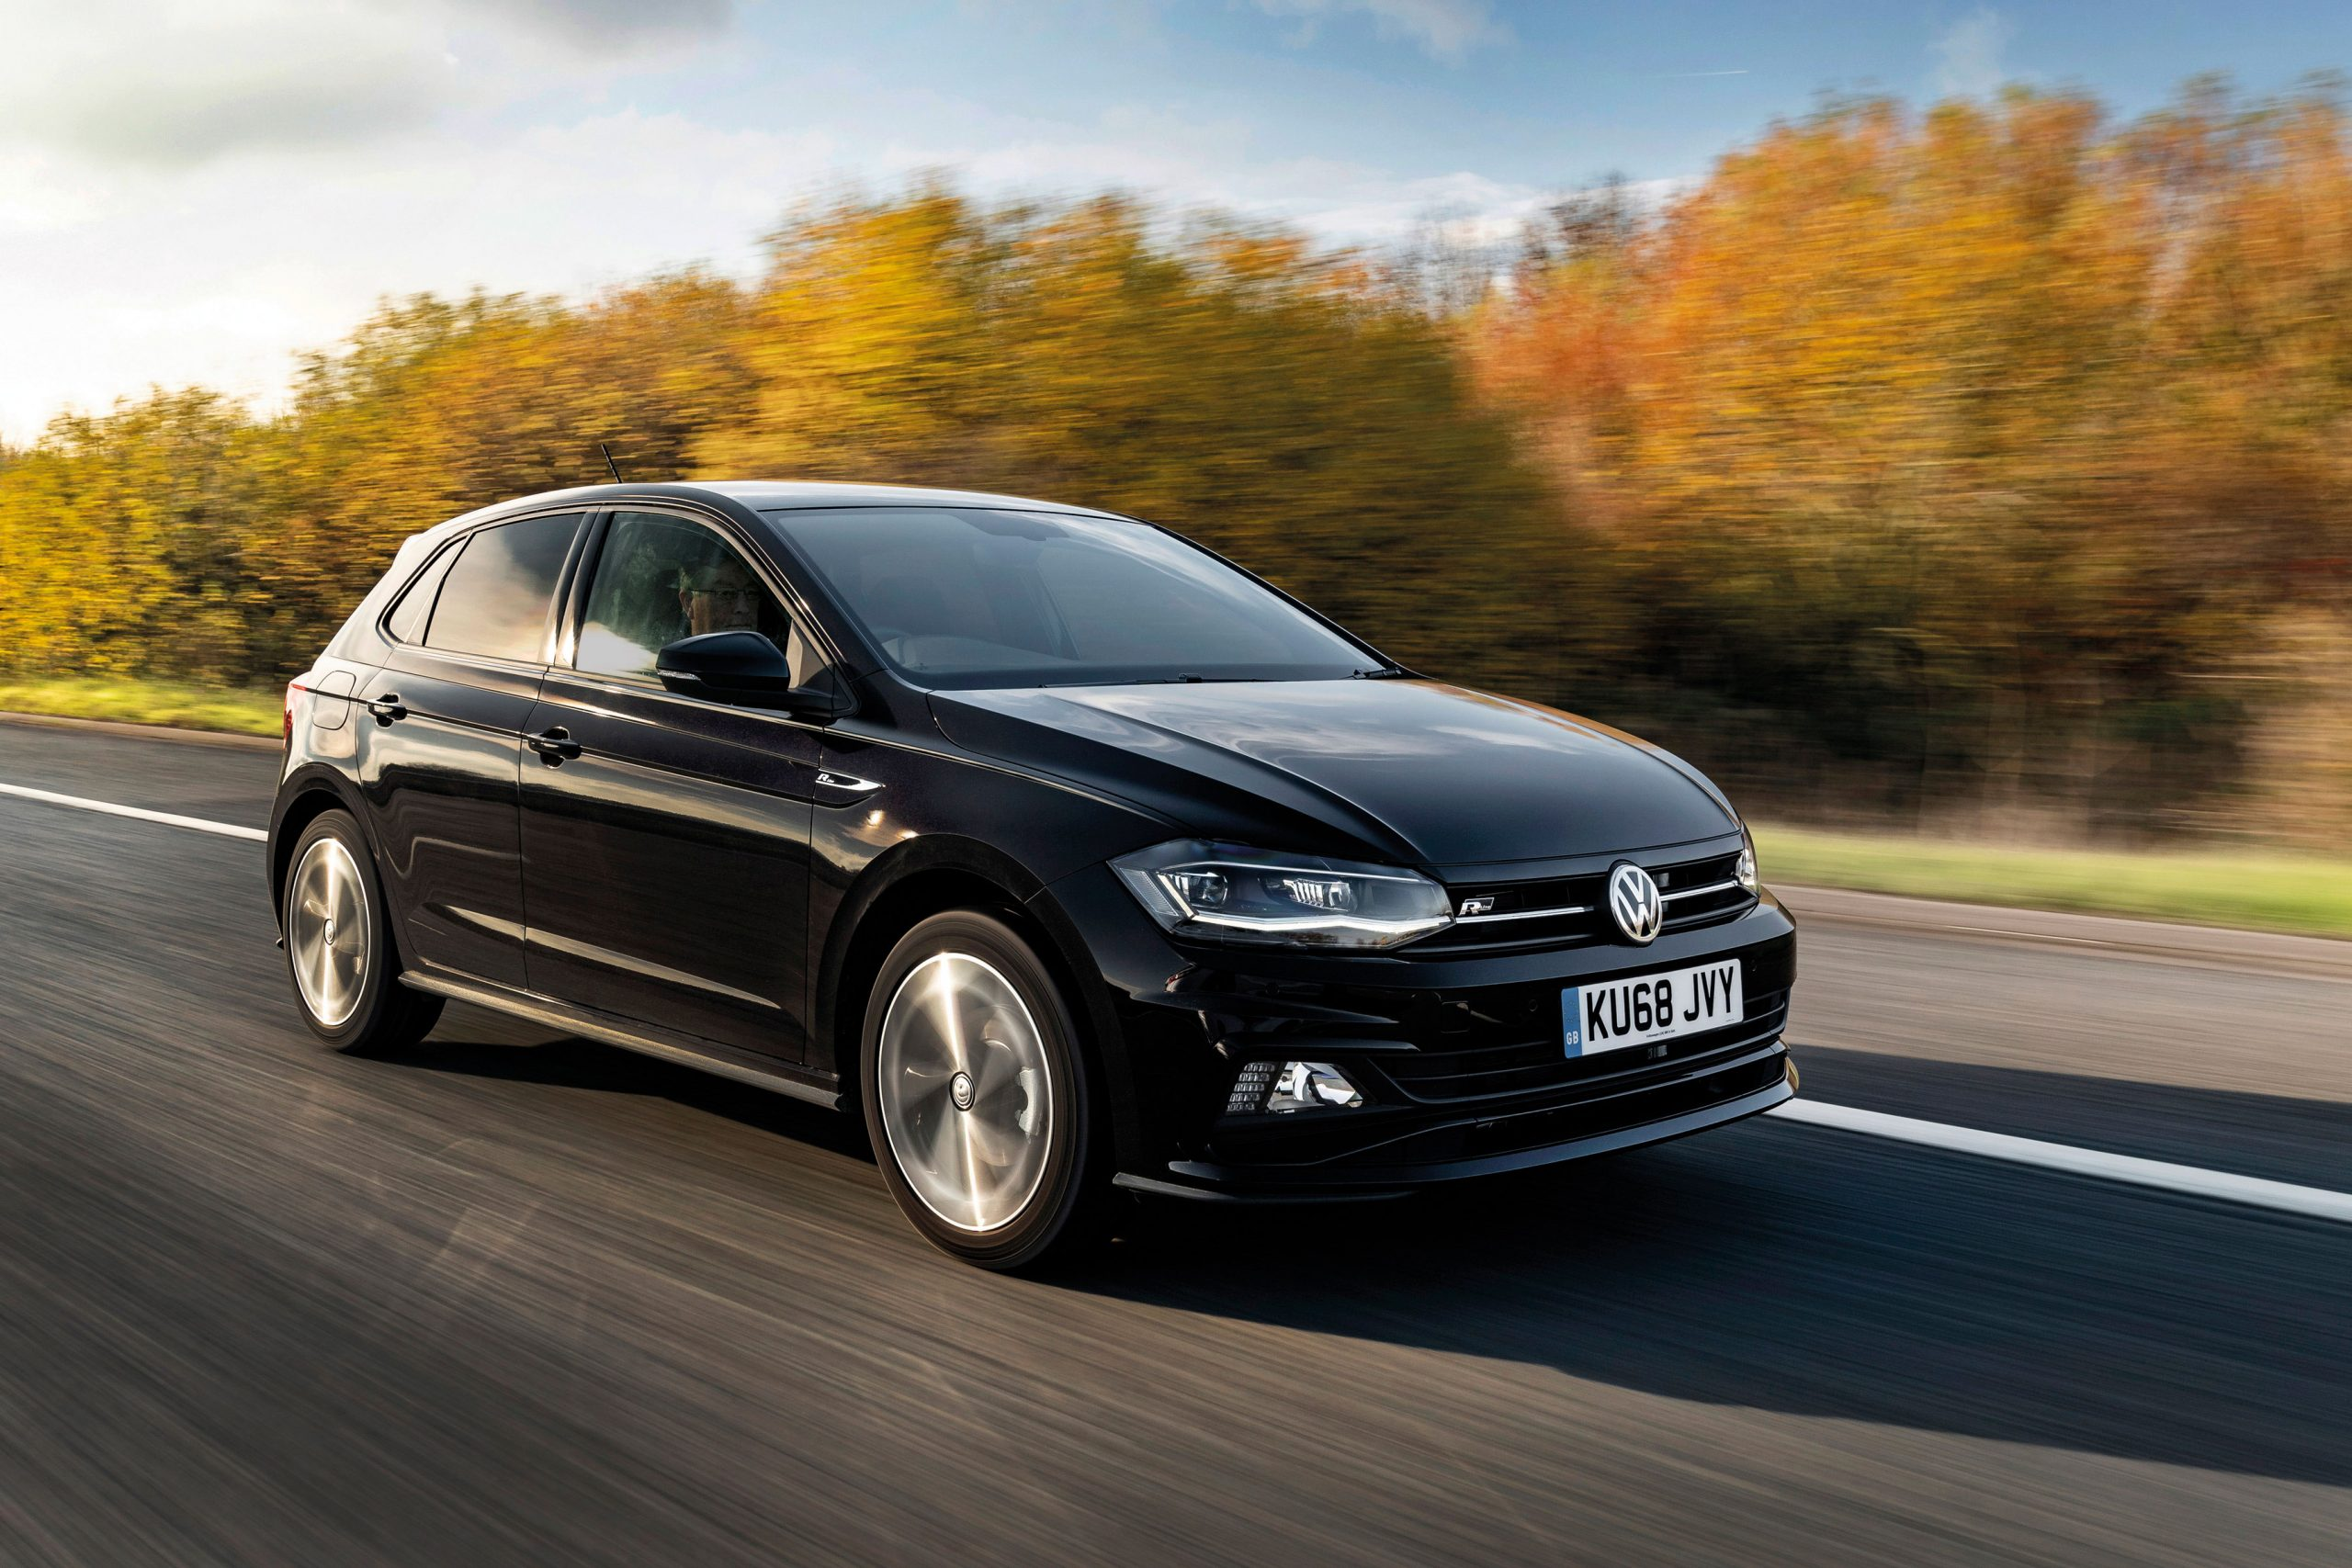 VW Polo, in black driving along a country road